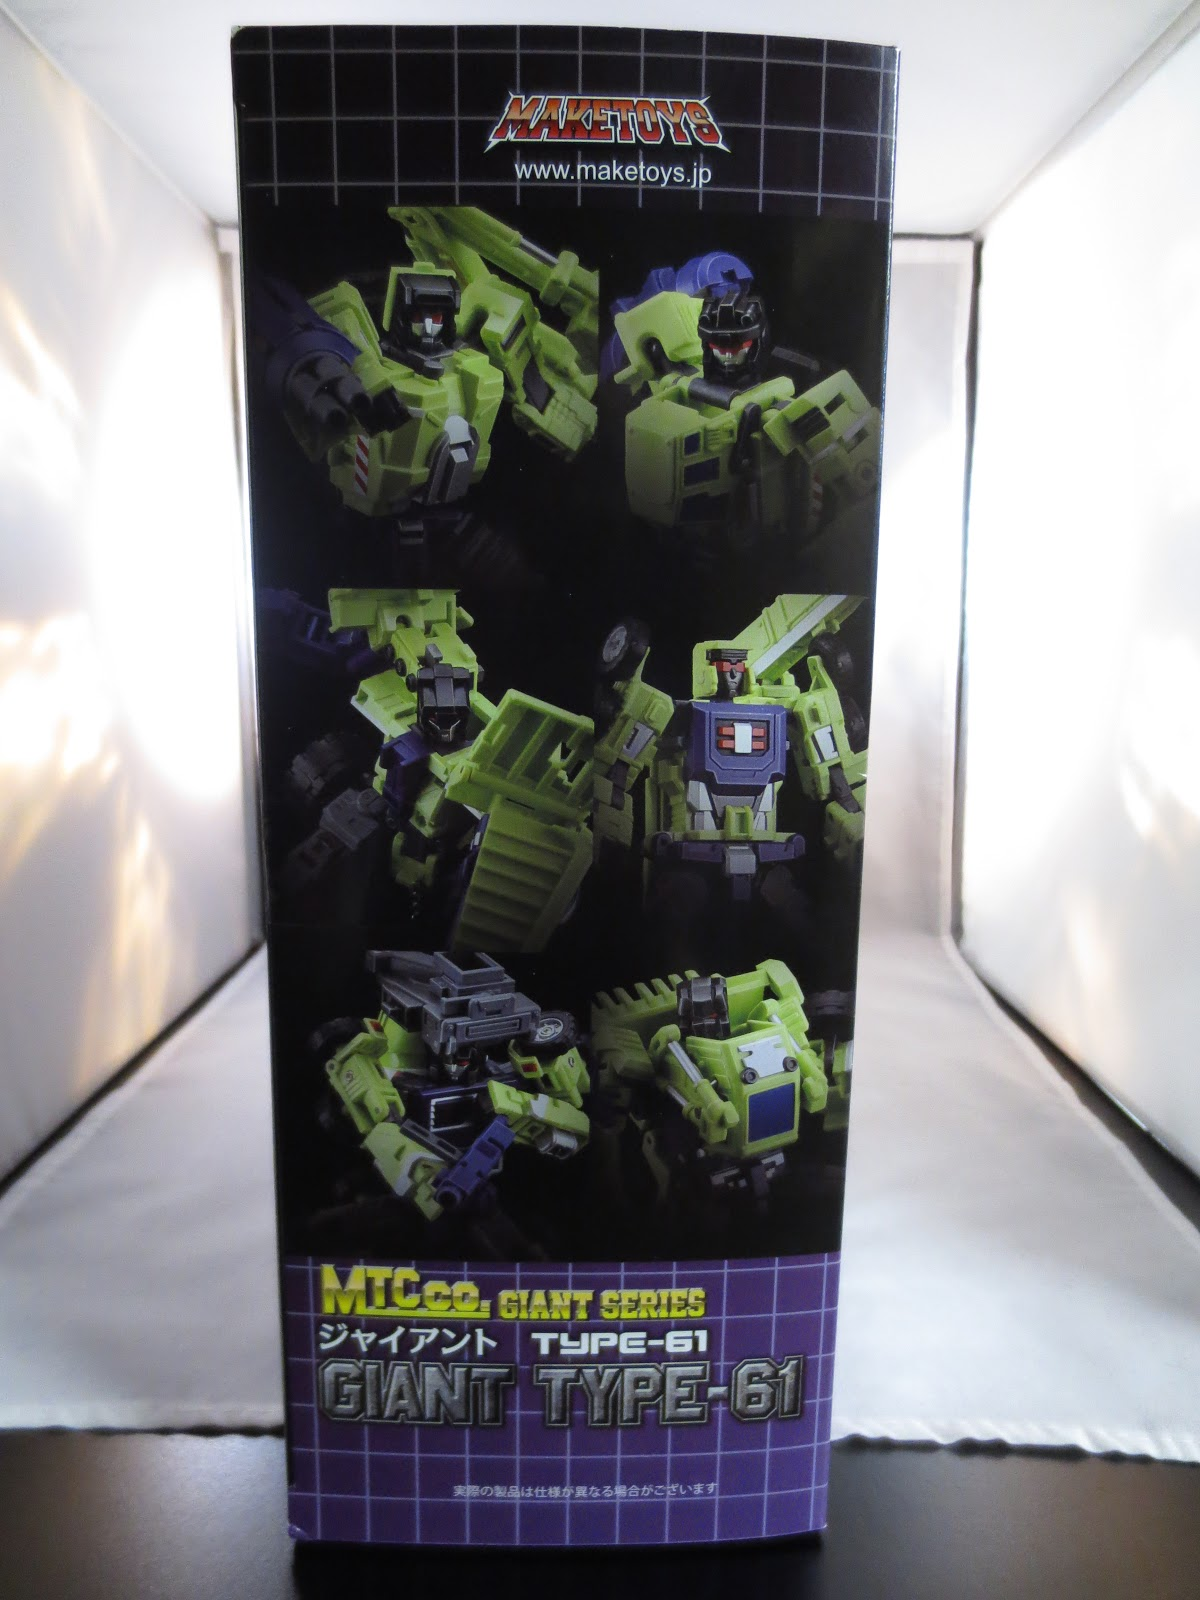 One Per Case 3rd Party Transformers Maketoys Green Giant Not Type 61 By Inside Of The Beautiful Box Above We Find A Plain Card Its Slip Cover With Stamp On Front Telling Us Whats Within